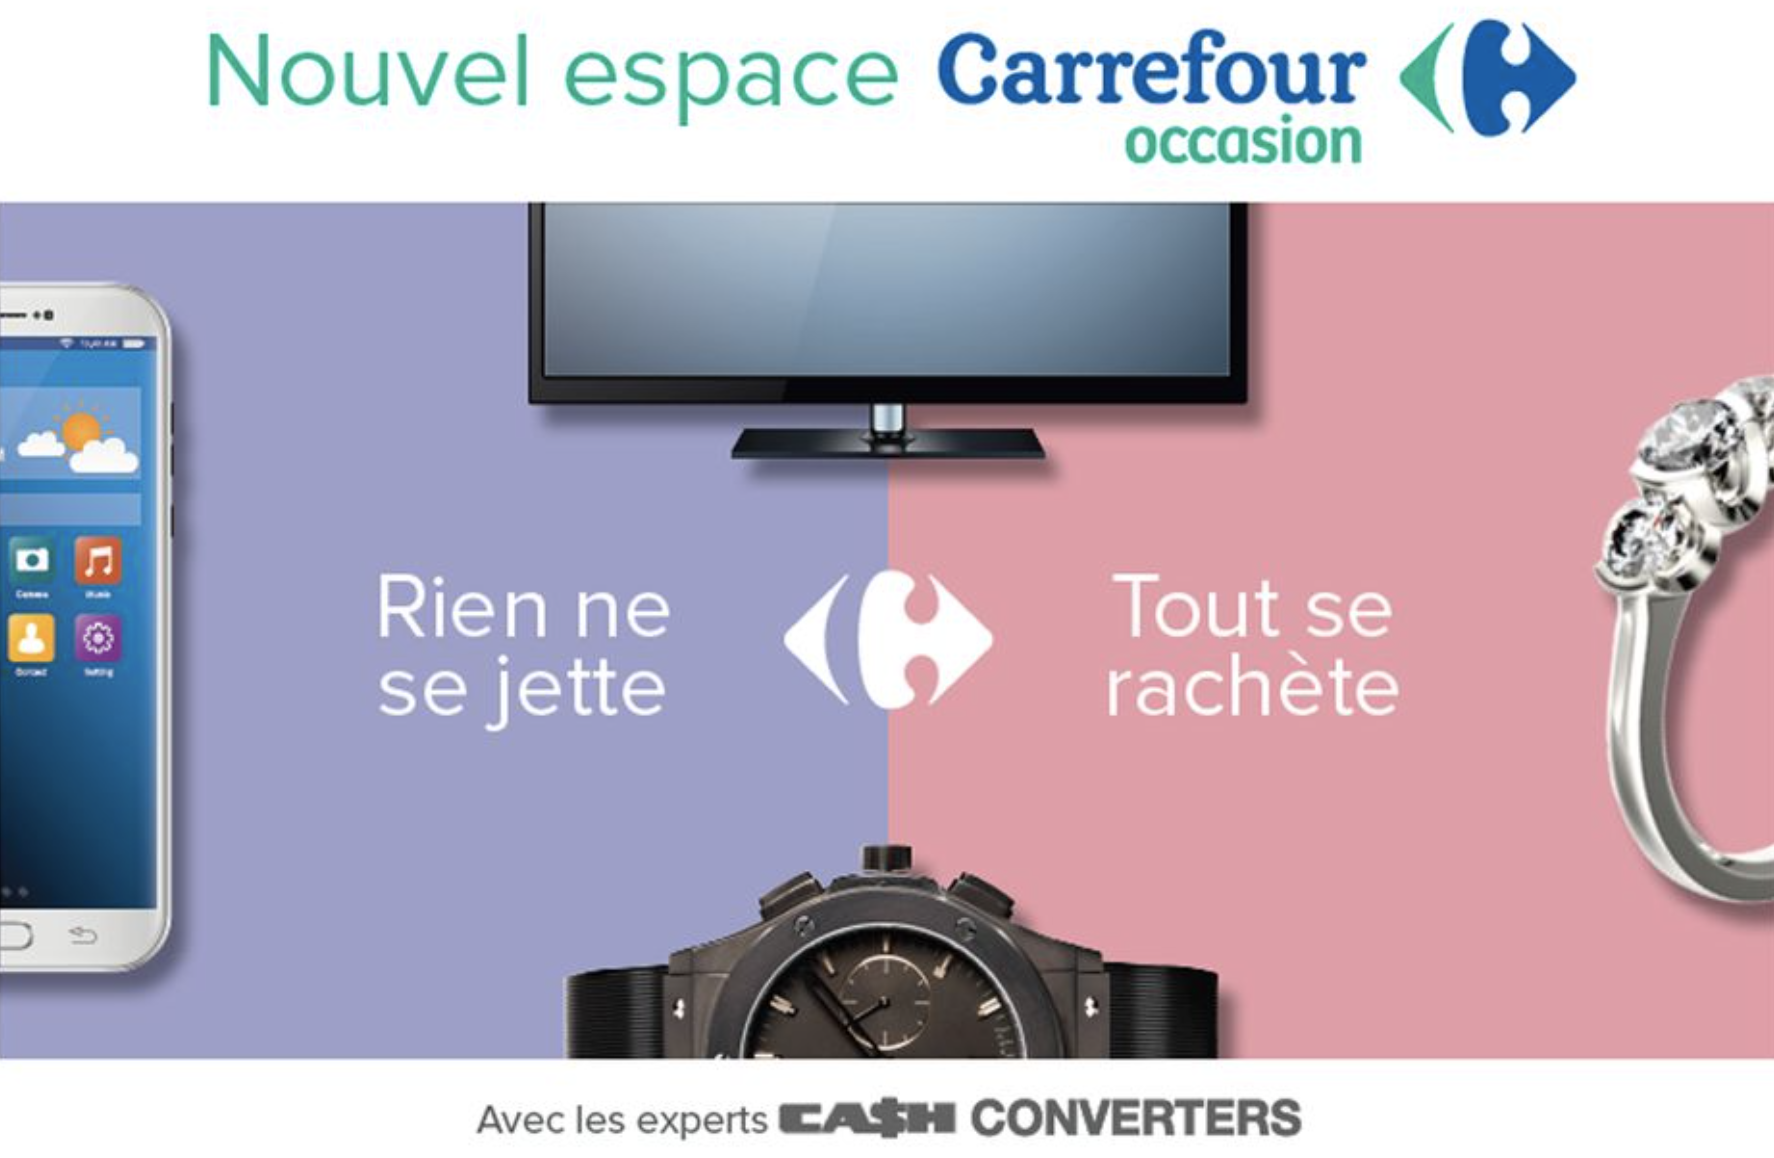 Carrefour Occasionn